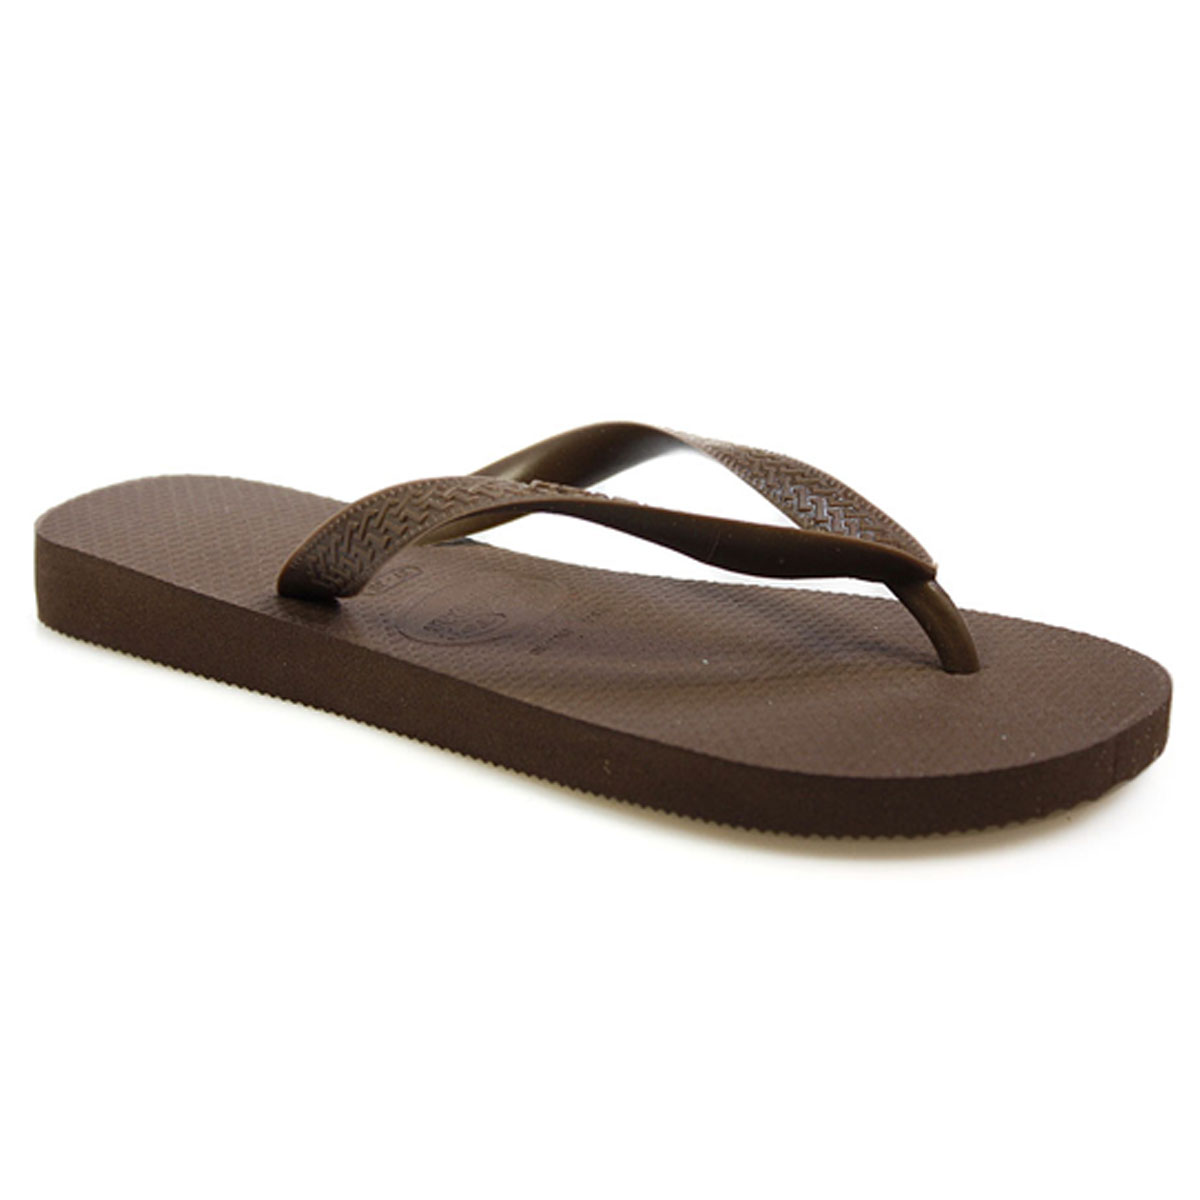 Shop all mens and womens sandals, slides and flip flops carried at Journeys. Journeys carries the hottest brands and latest styles of athletic sneakers, boots, sandals, and casual shoes.